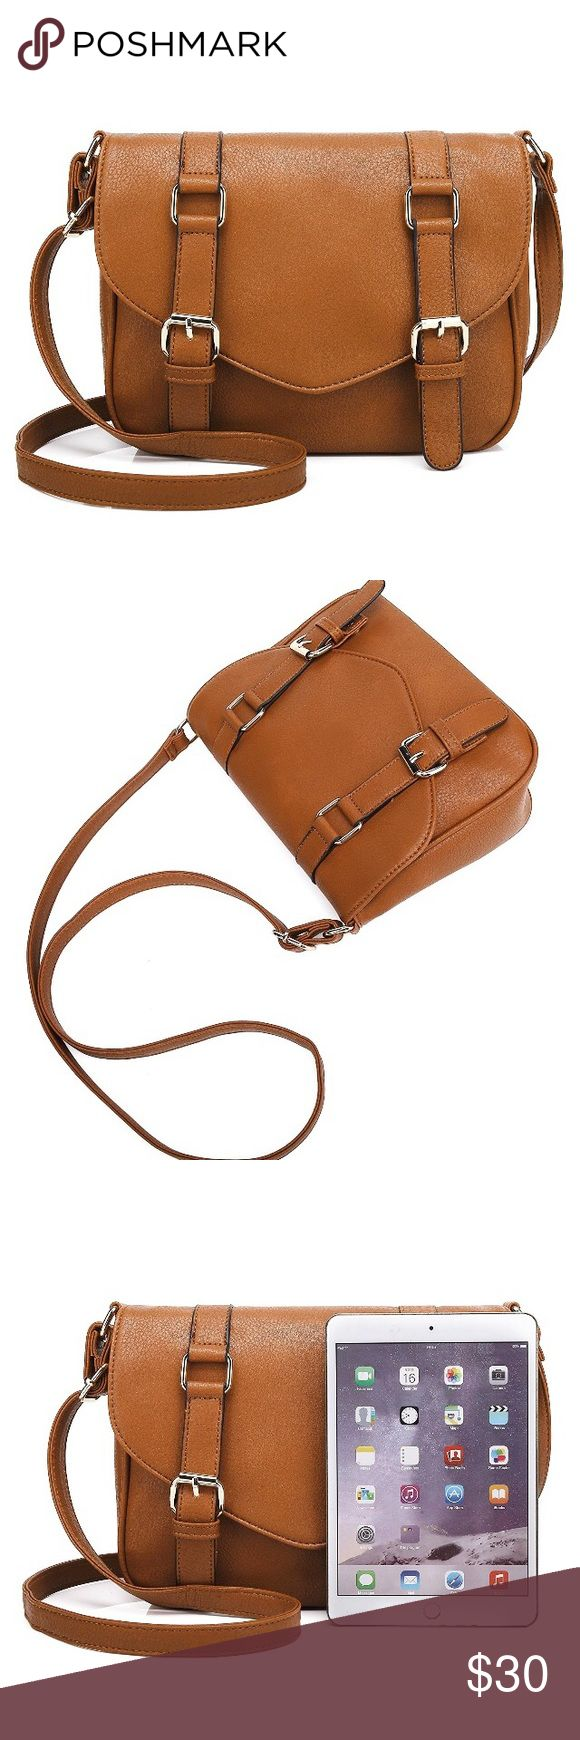 💼CUTE  CROSSBODY BAG 💼 PERFECT WITH ANY OUFIT WHEN OUT AND ABOUT ALLOWS FOR HAND FREE WEAR Bags Crossbody Bags